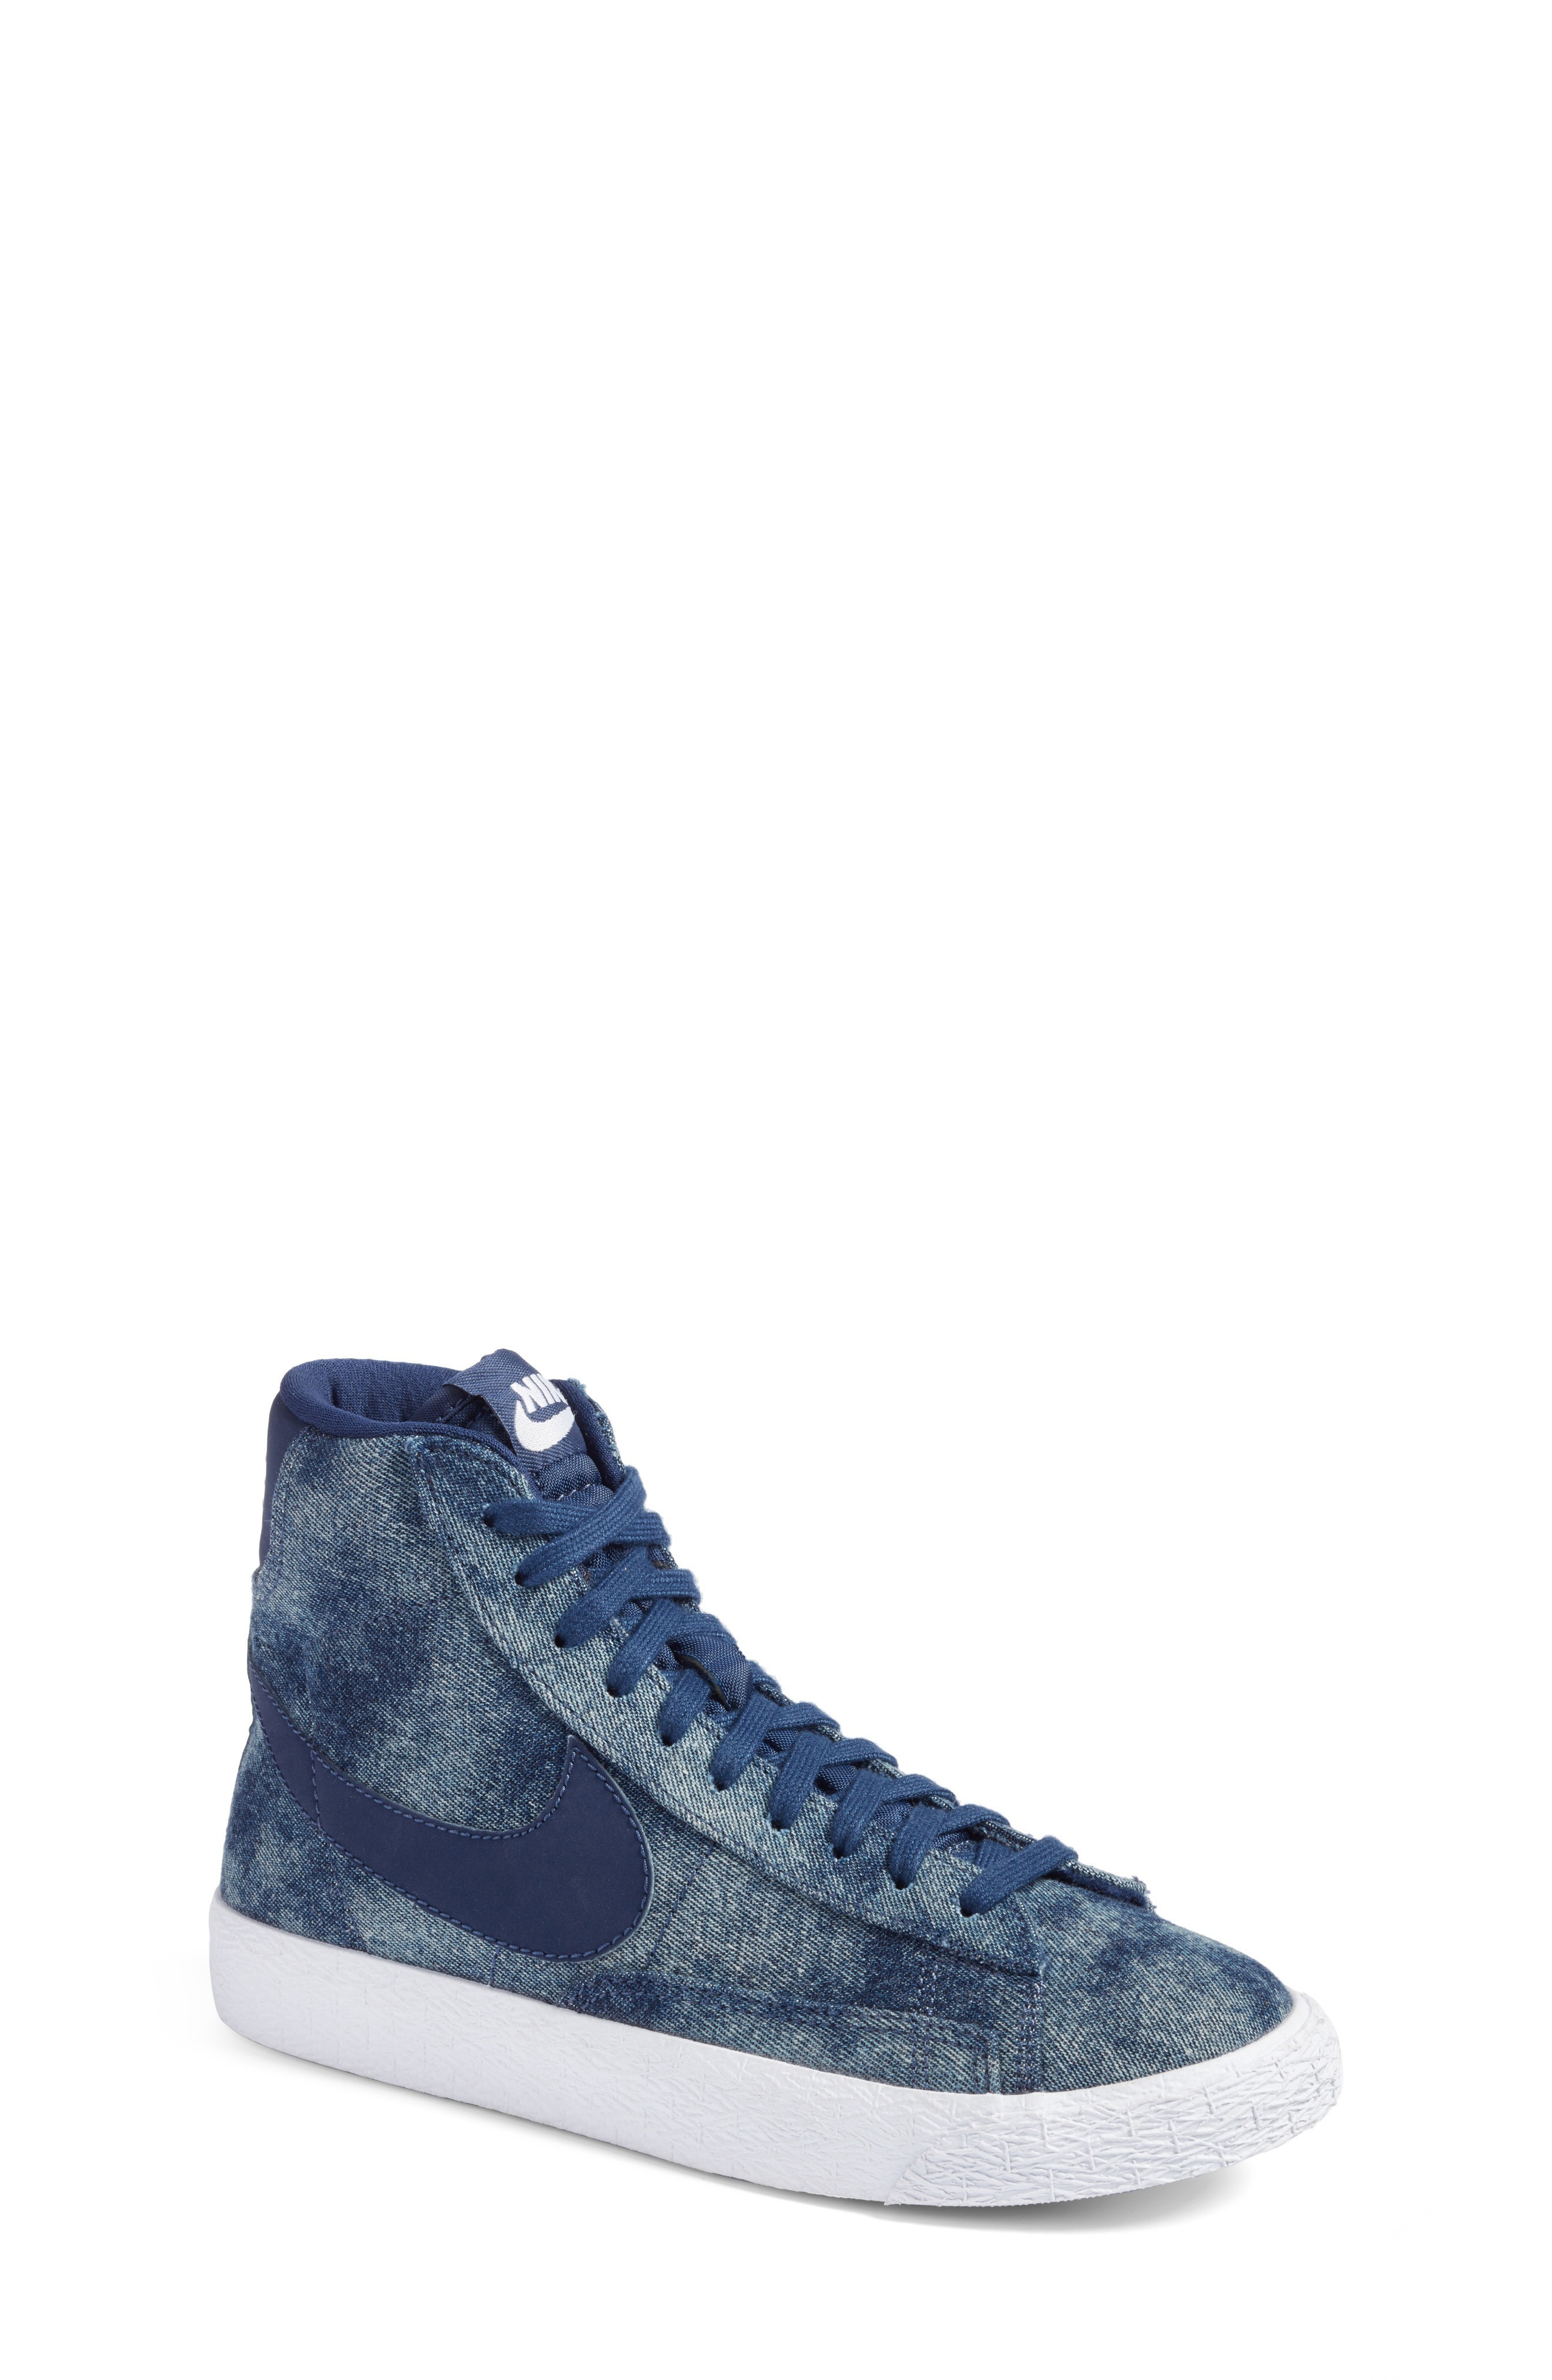 関税送料込みNike Blazer Mid SE High Top Sneaker (Big Ki 人気